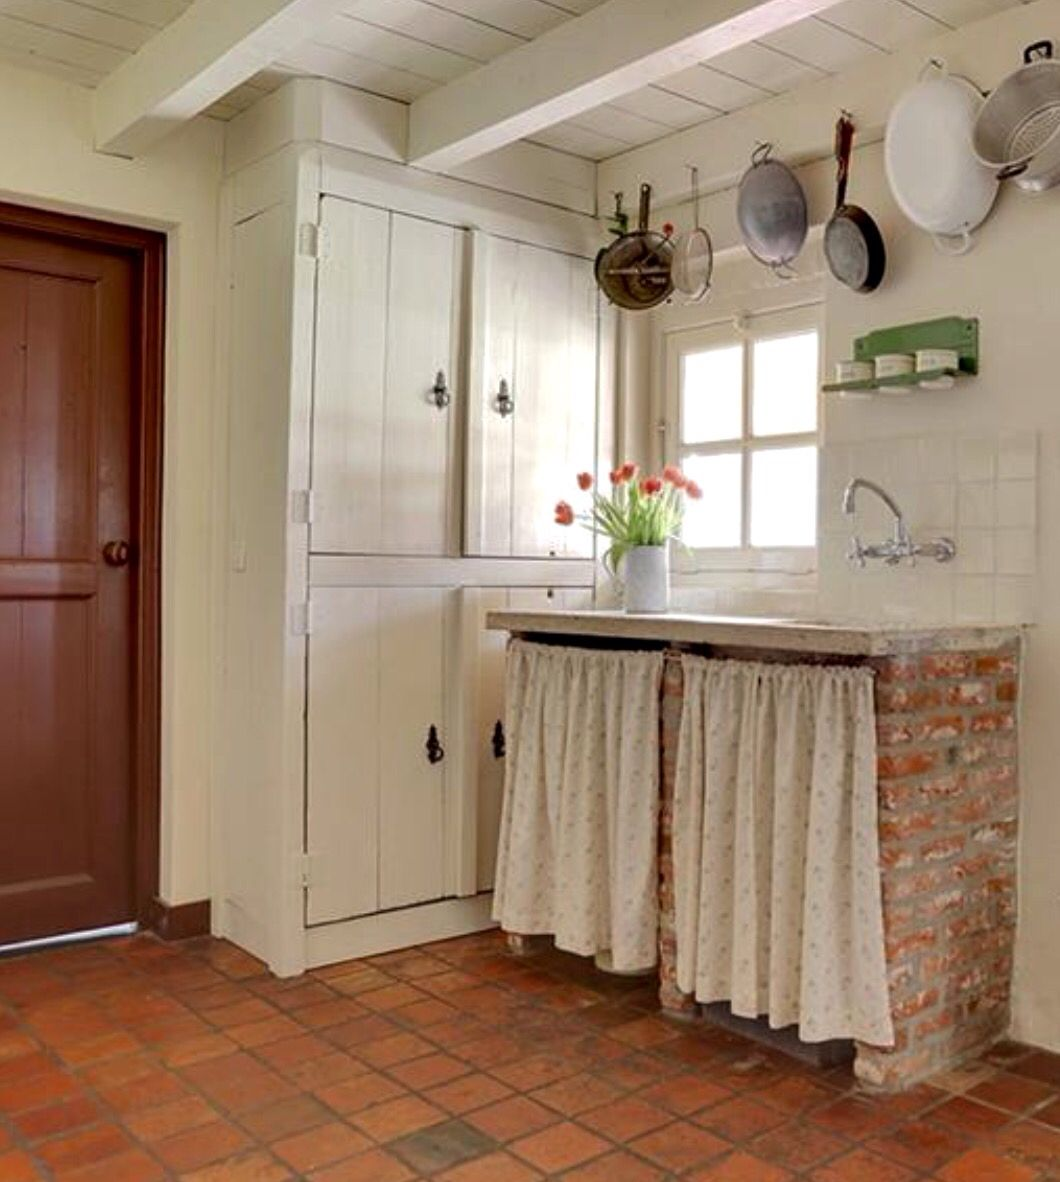 Country Cottage Kitchen Design Glamorous Rustic Original Built In Cabinetry Beams Tile Floor Decorating Design